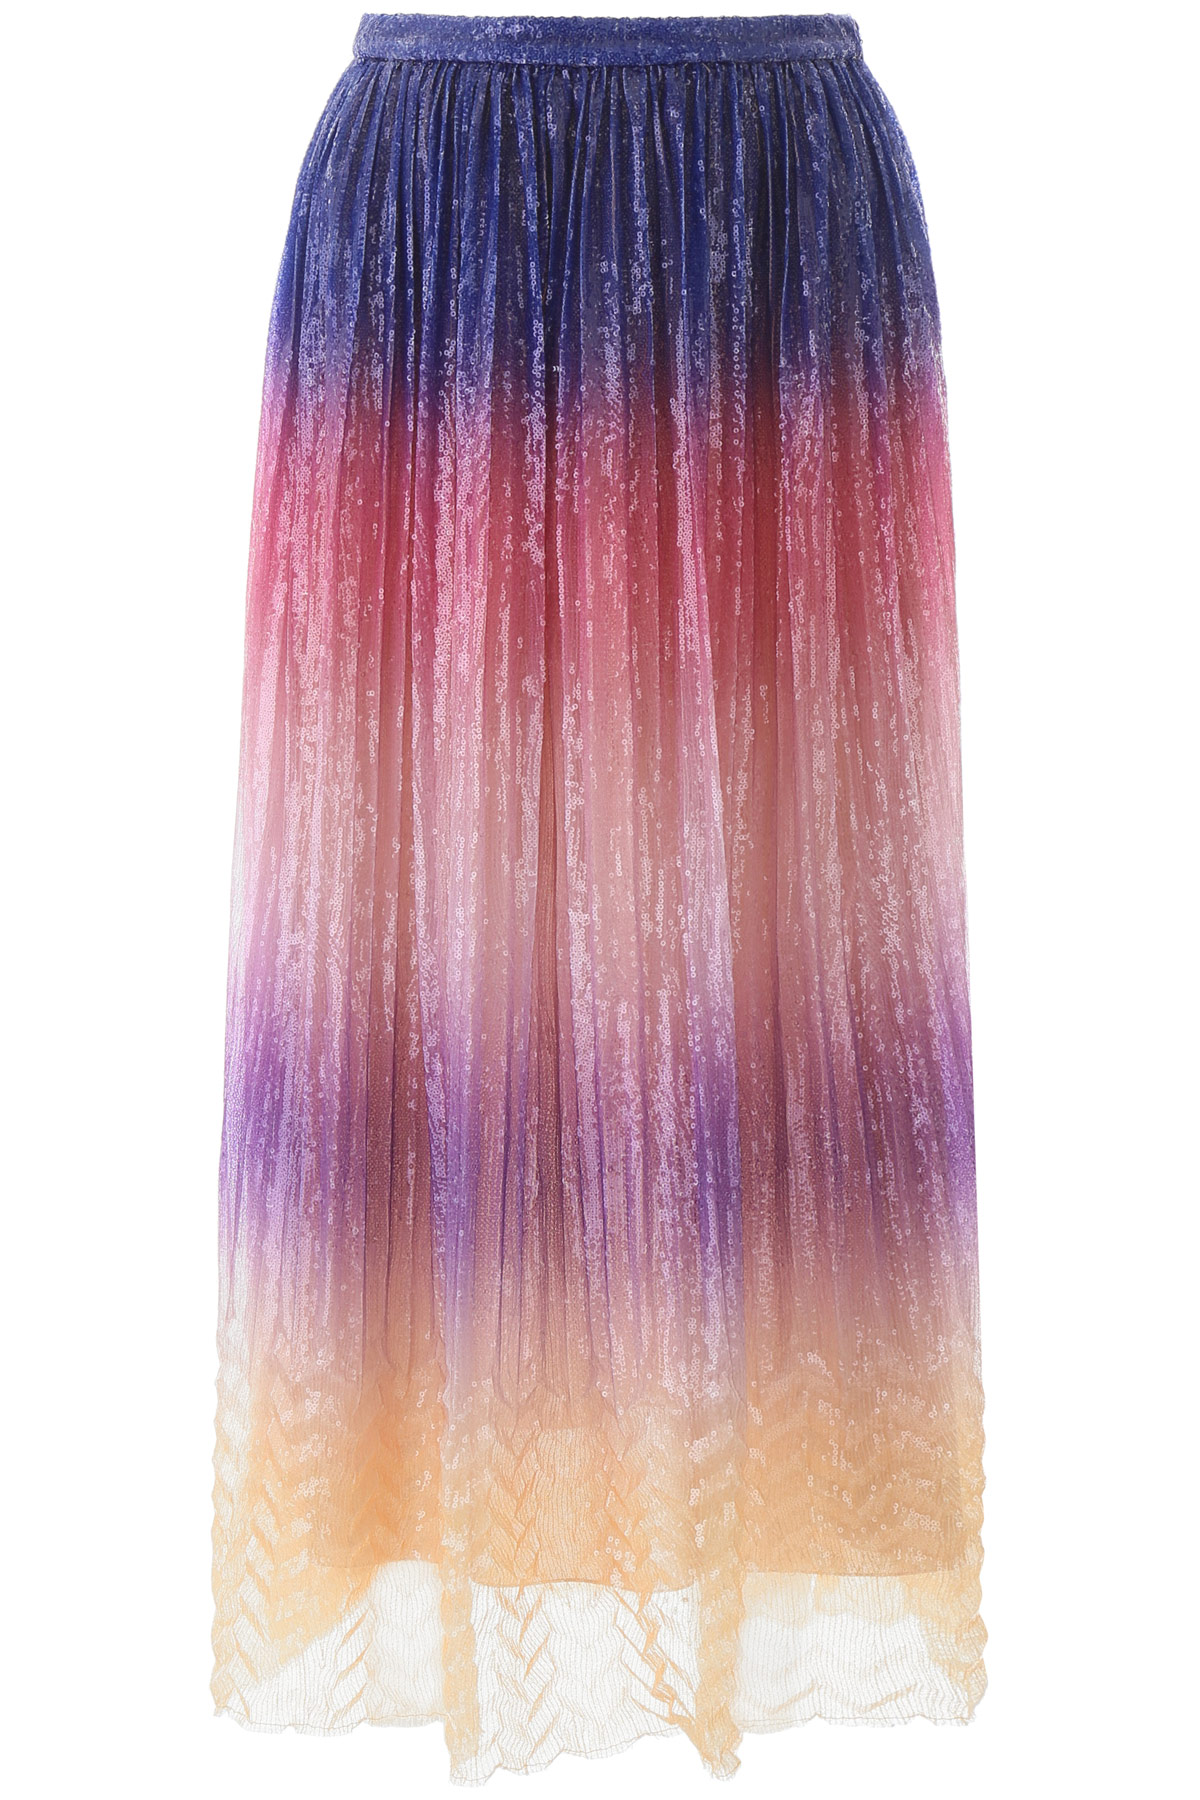 MARCO DE VINCENZO PLEATED SEQUINS SKIRT 40 Blue, Pink, Yellow